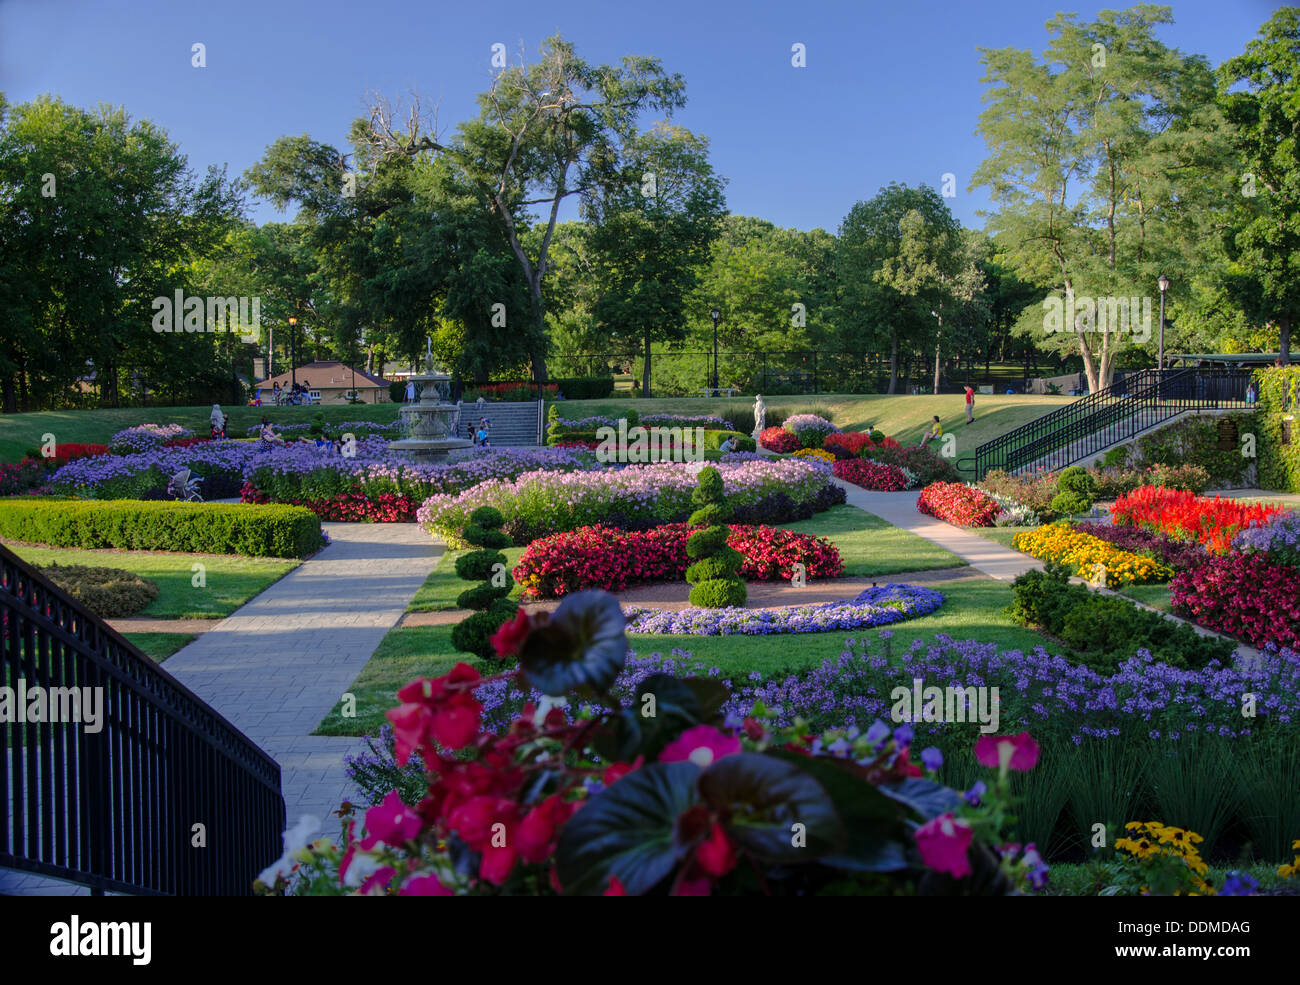 The Sunken Gardens in Phillips Park in Aurora, Illinois along the Lincoln Highway - Stock Image